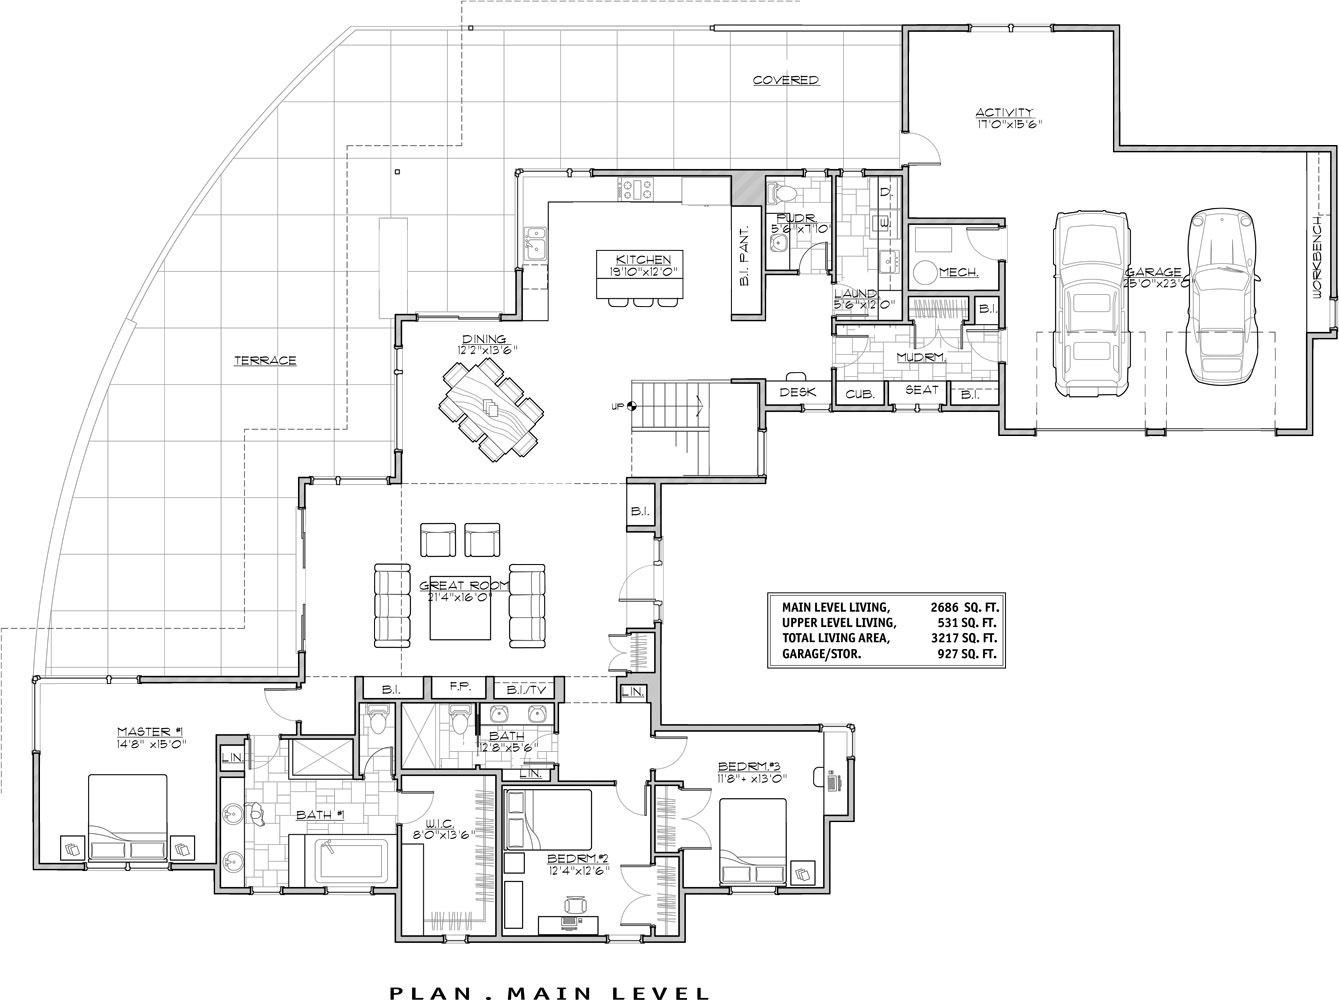 1st Floor Plan image of Featured House Plan: PBH - 9044